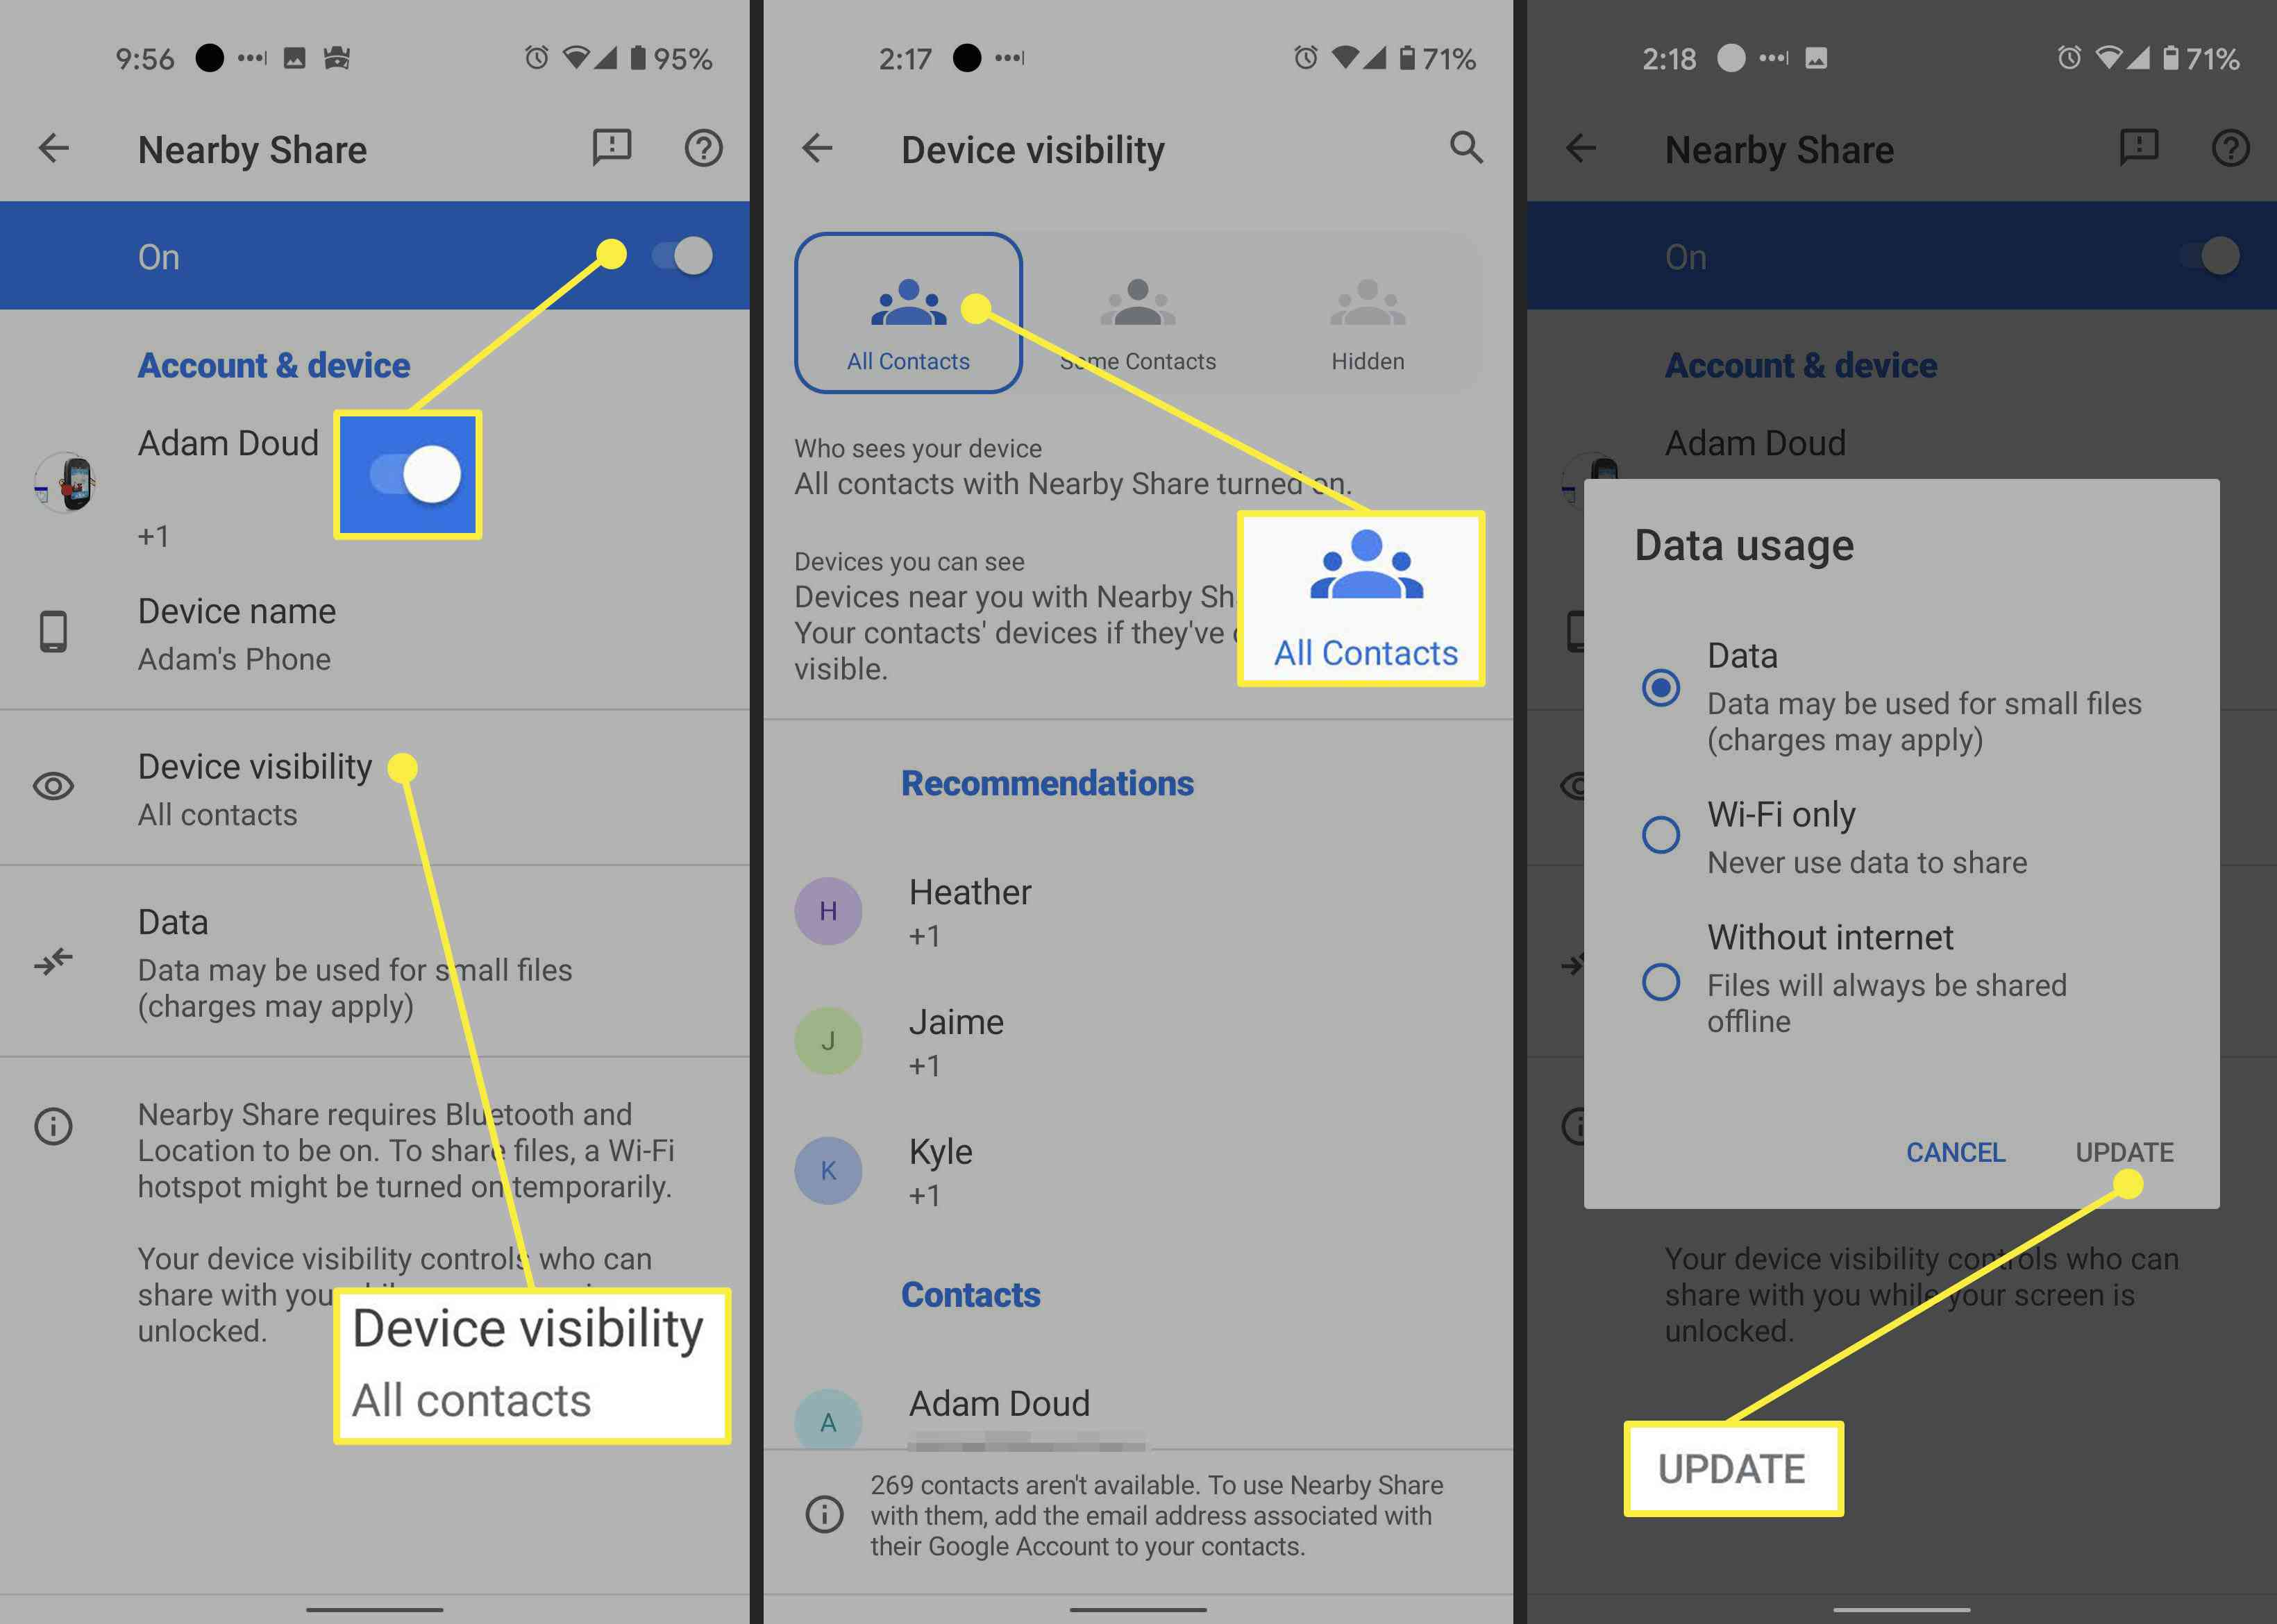 Steps to take to turn on Nearby Share on Android.